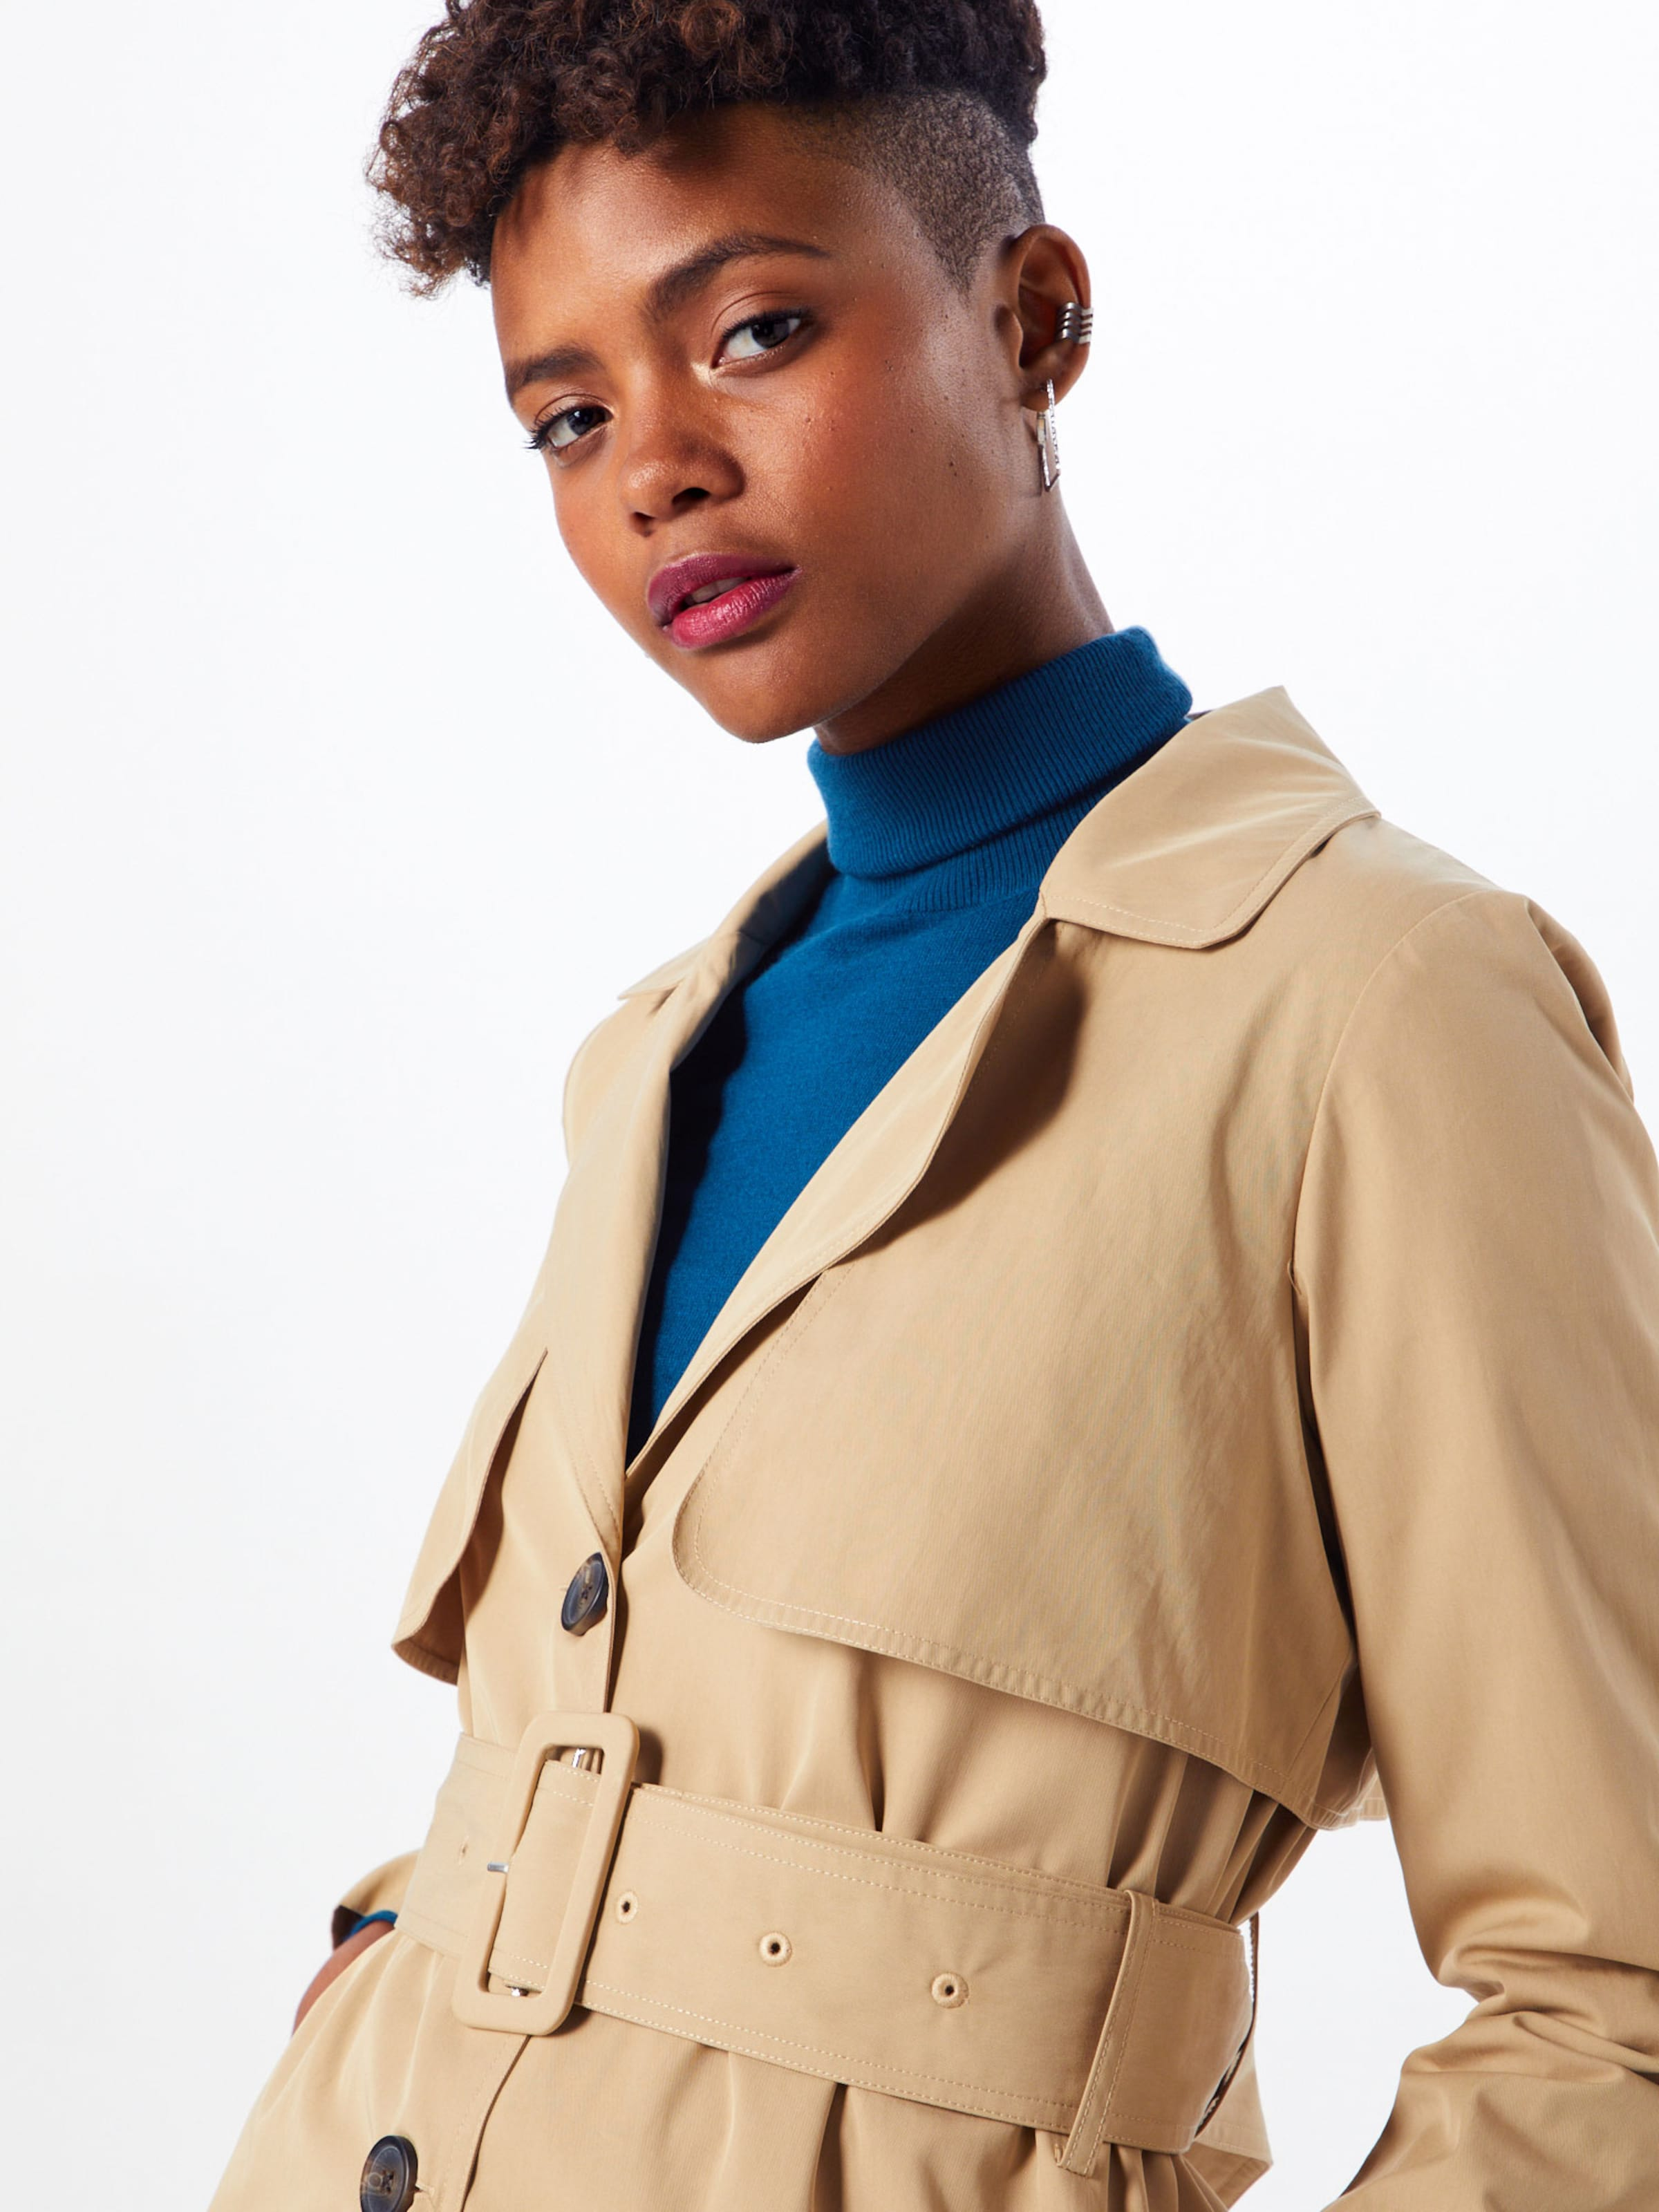 Beige a Trenchcoat s In Y yvYf6b7g